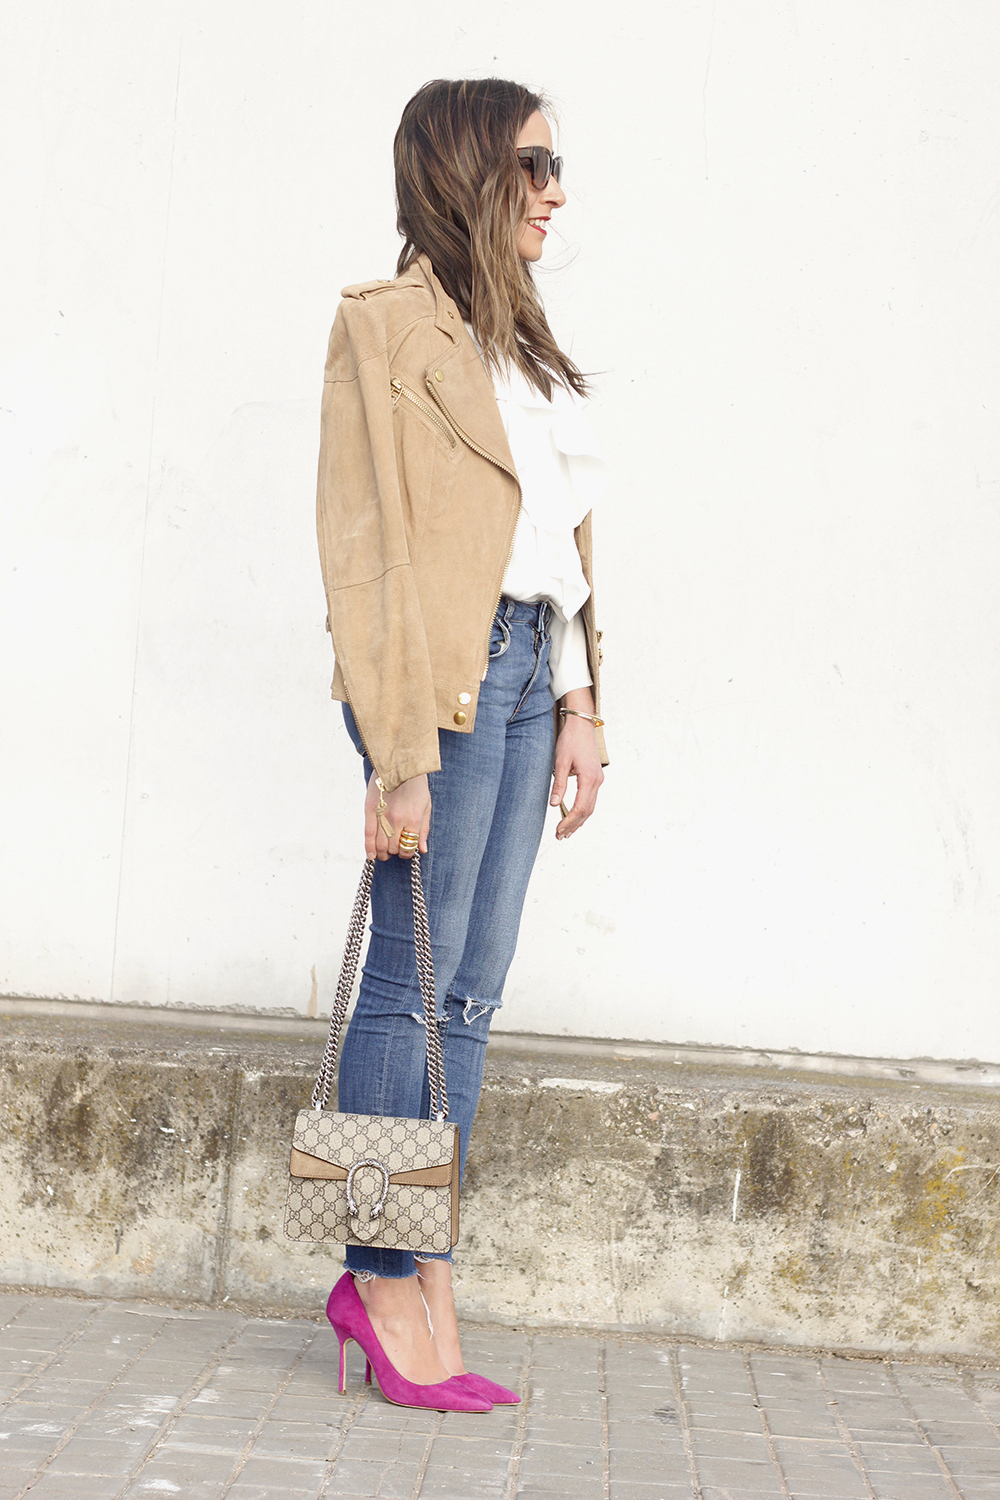 suede jacket ripped jeans Ruffled blouse carolina herrea heels gucci bag Madrid fashion week outfit05